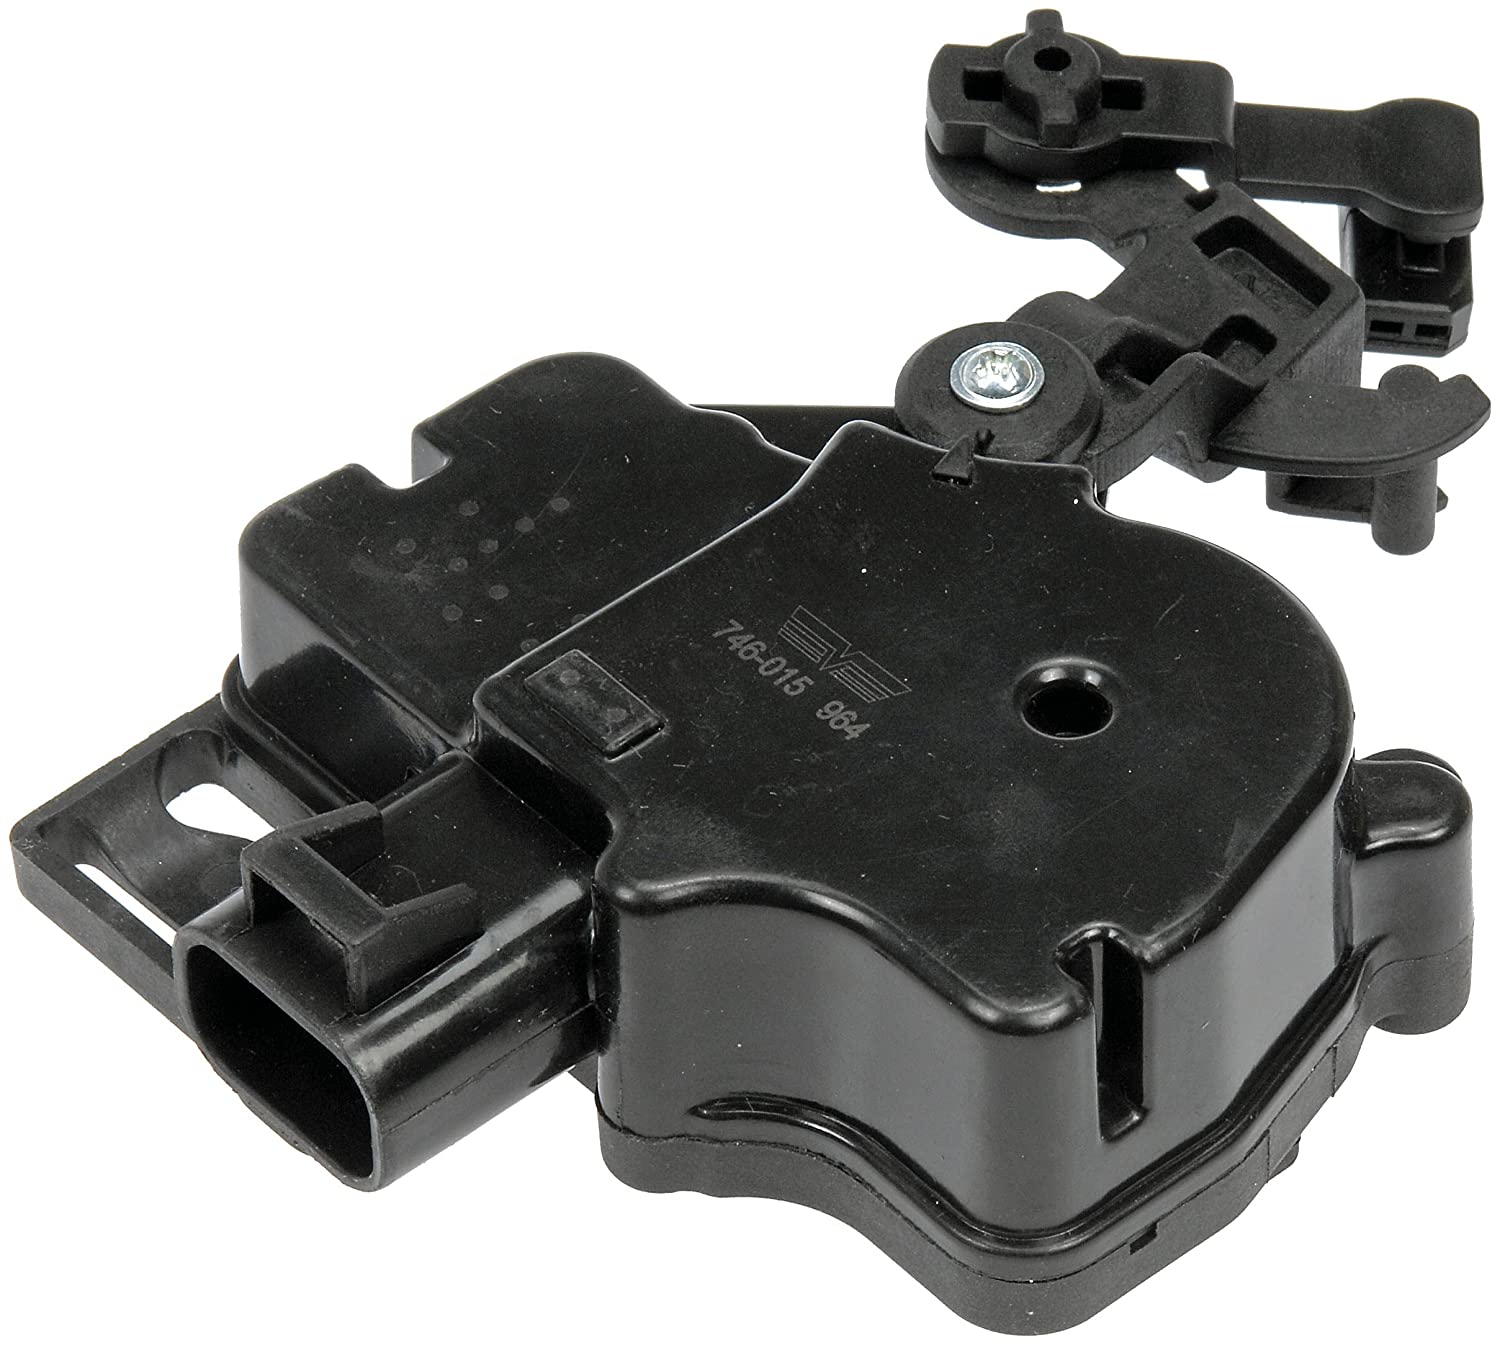 81pjumxT2YL._SL1500_ amazon com dorman 746 015 door lock actuator automotive  at gsmx.co